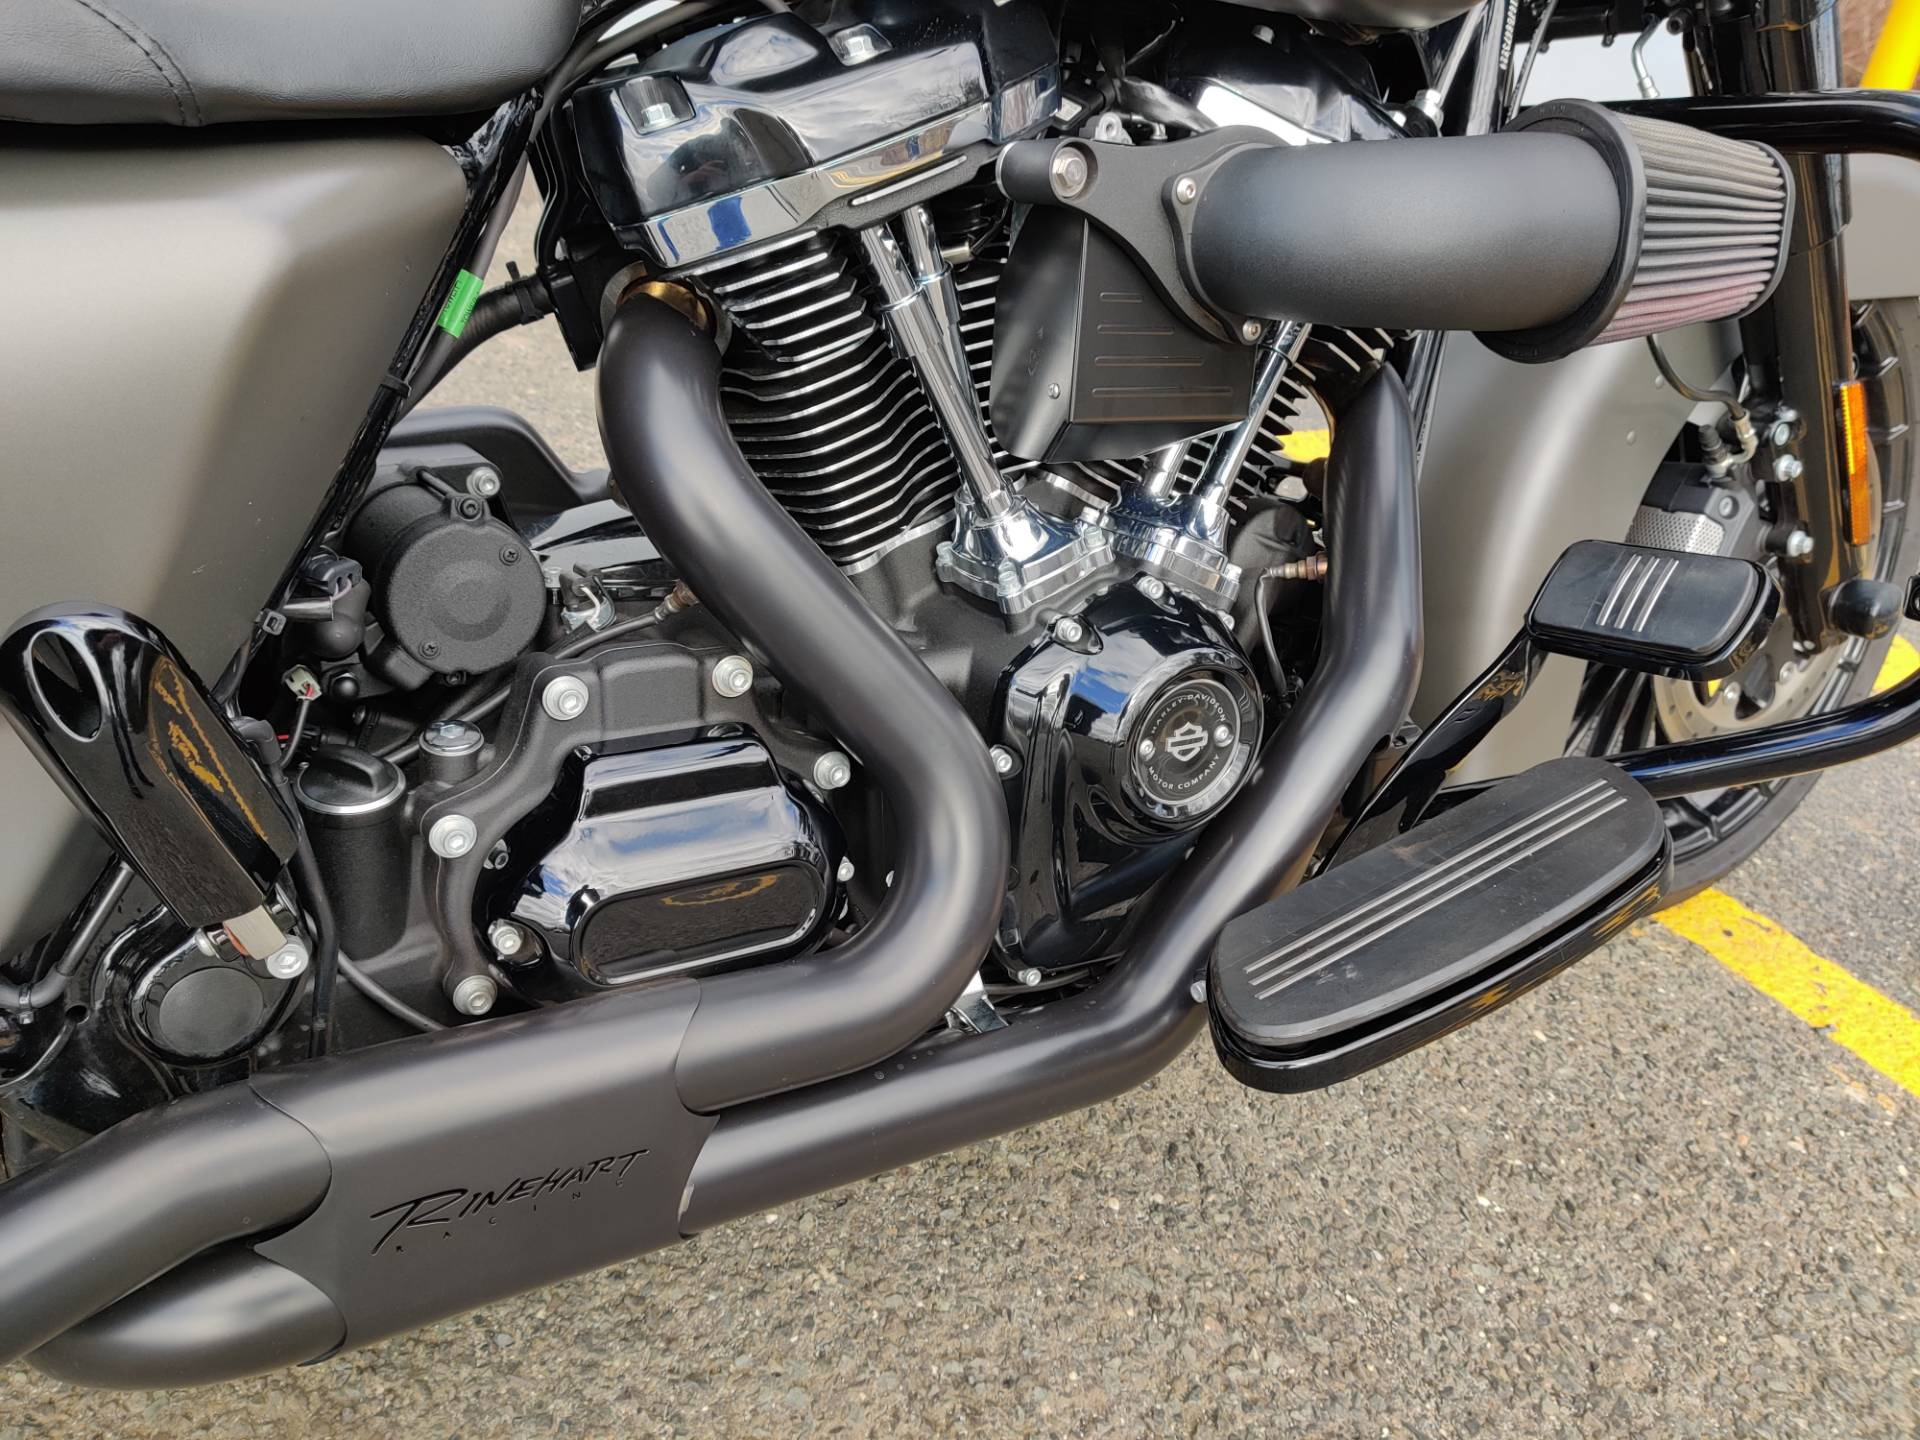 2018 Harley-Davidson Road King Special in West Long Branch, New Jersey - Photo 10